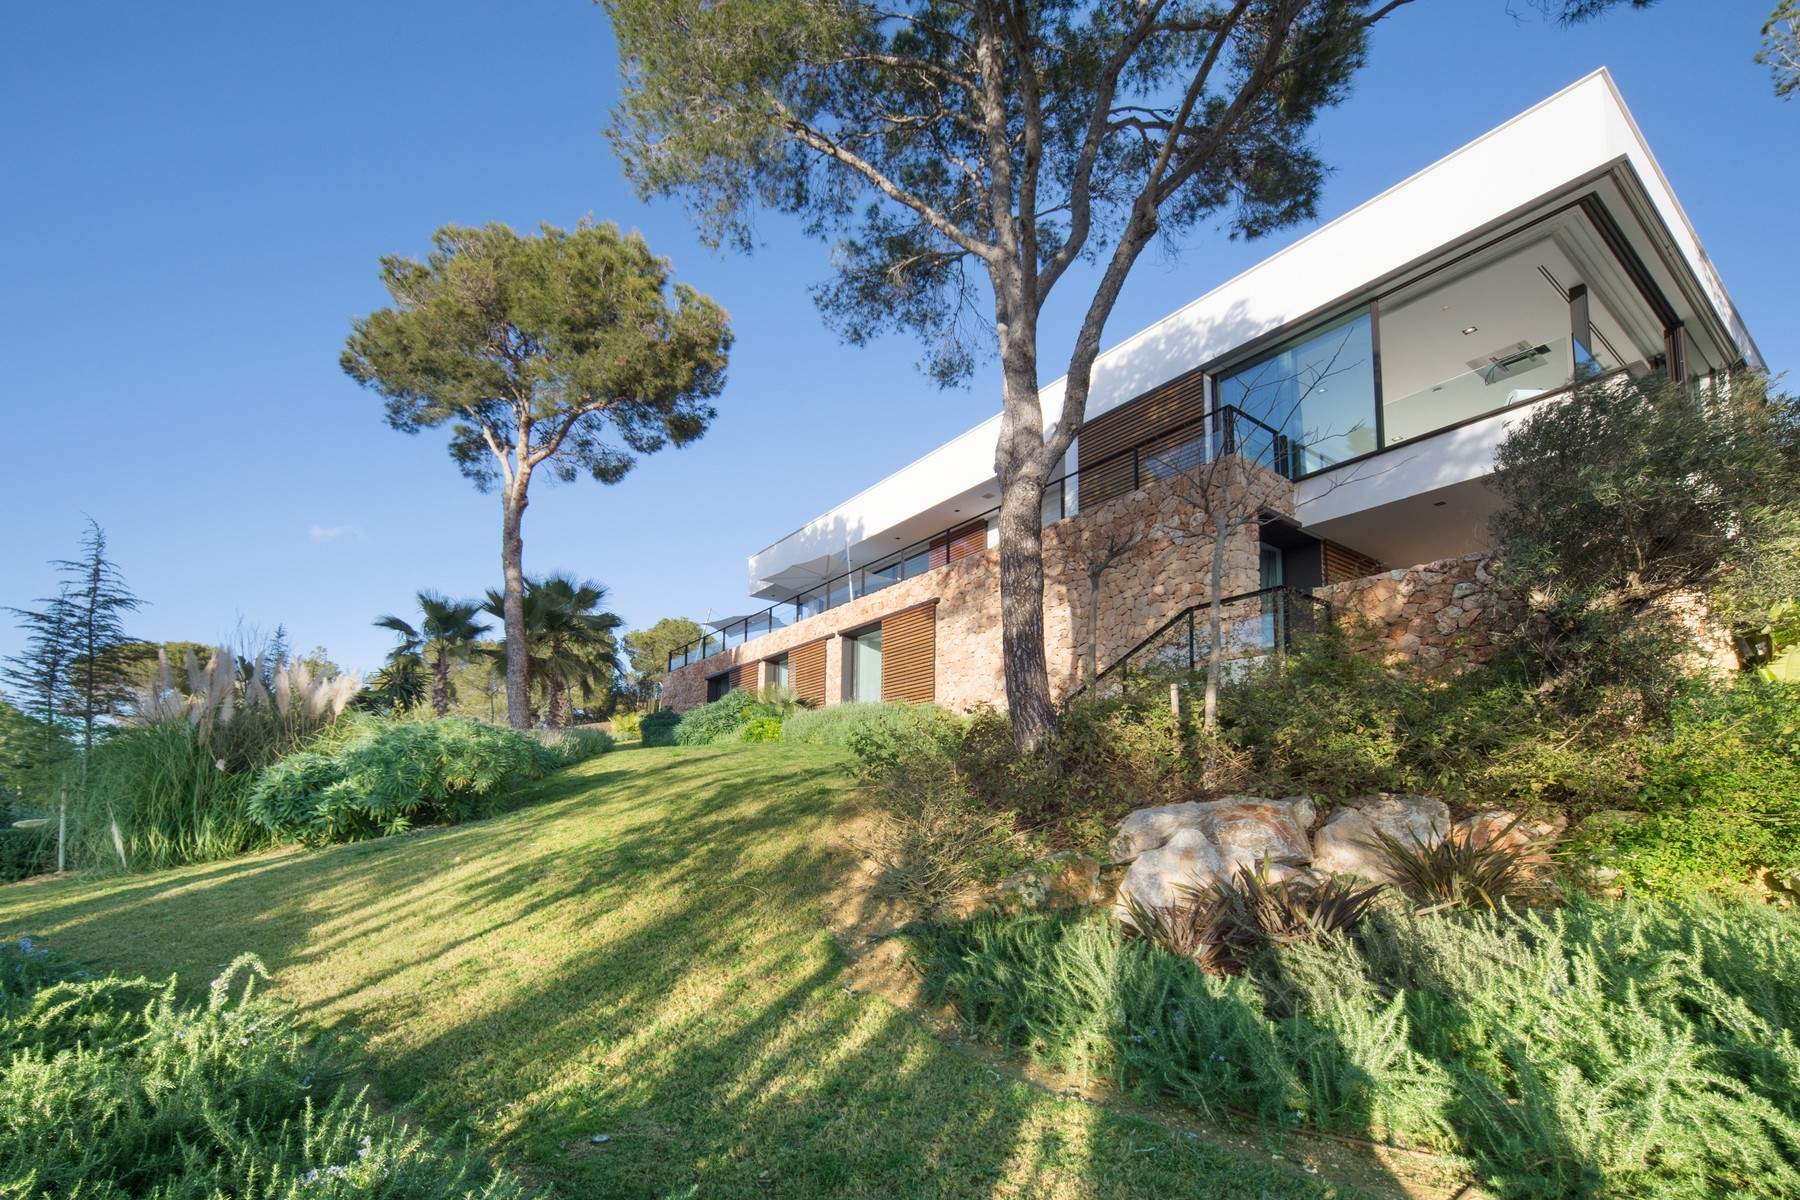 Single Family Home for Sale at Amazing, new build villa of excellent qualities Santa Ponsa, Mallorca, 07180 Spain